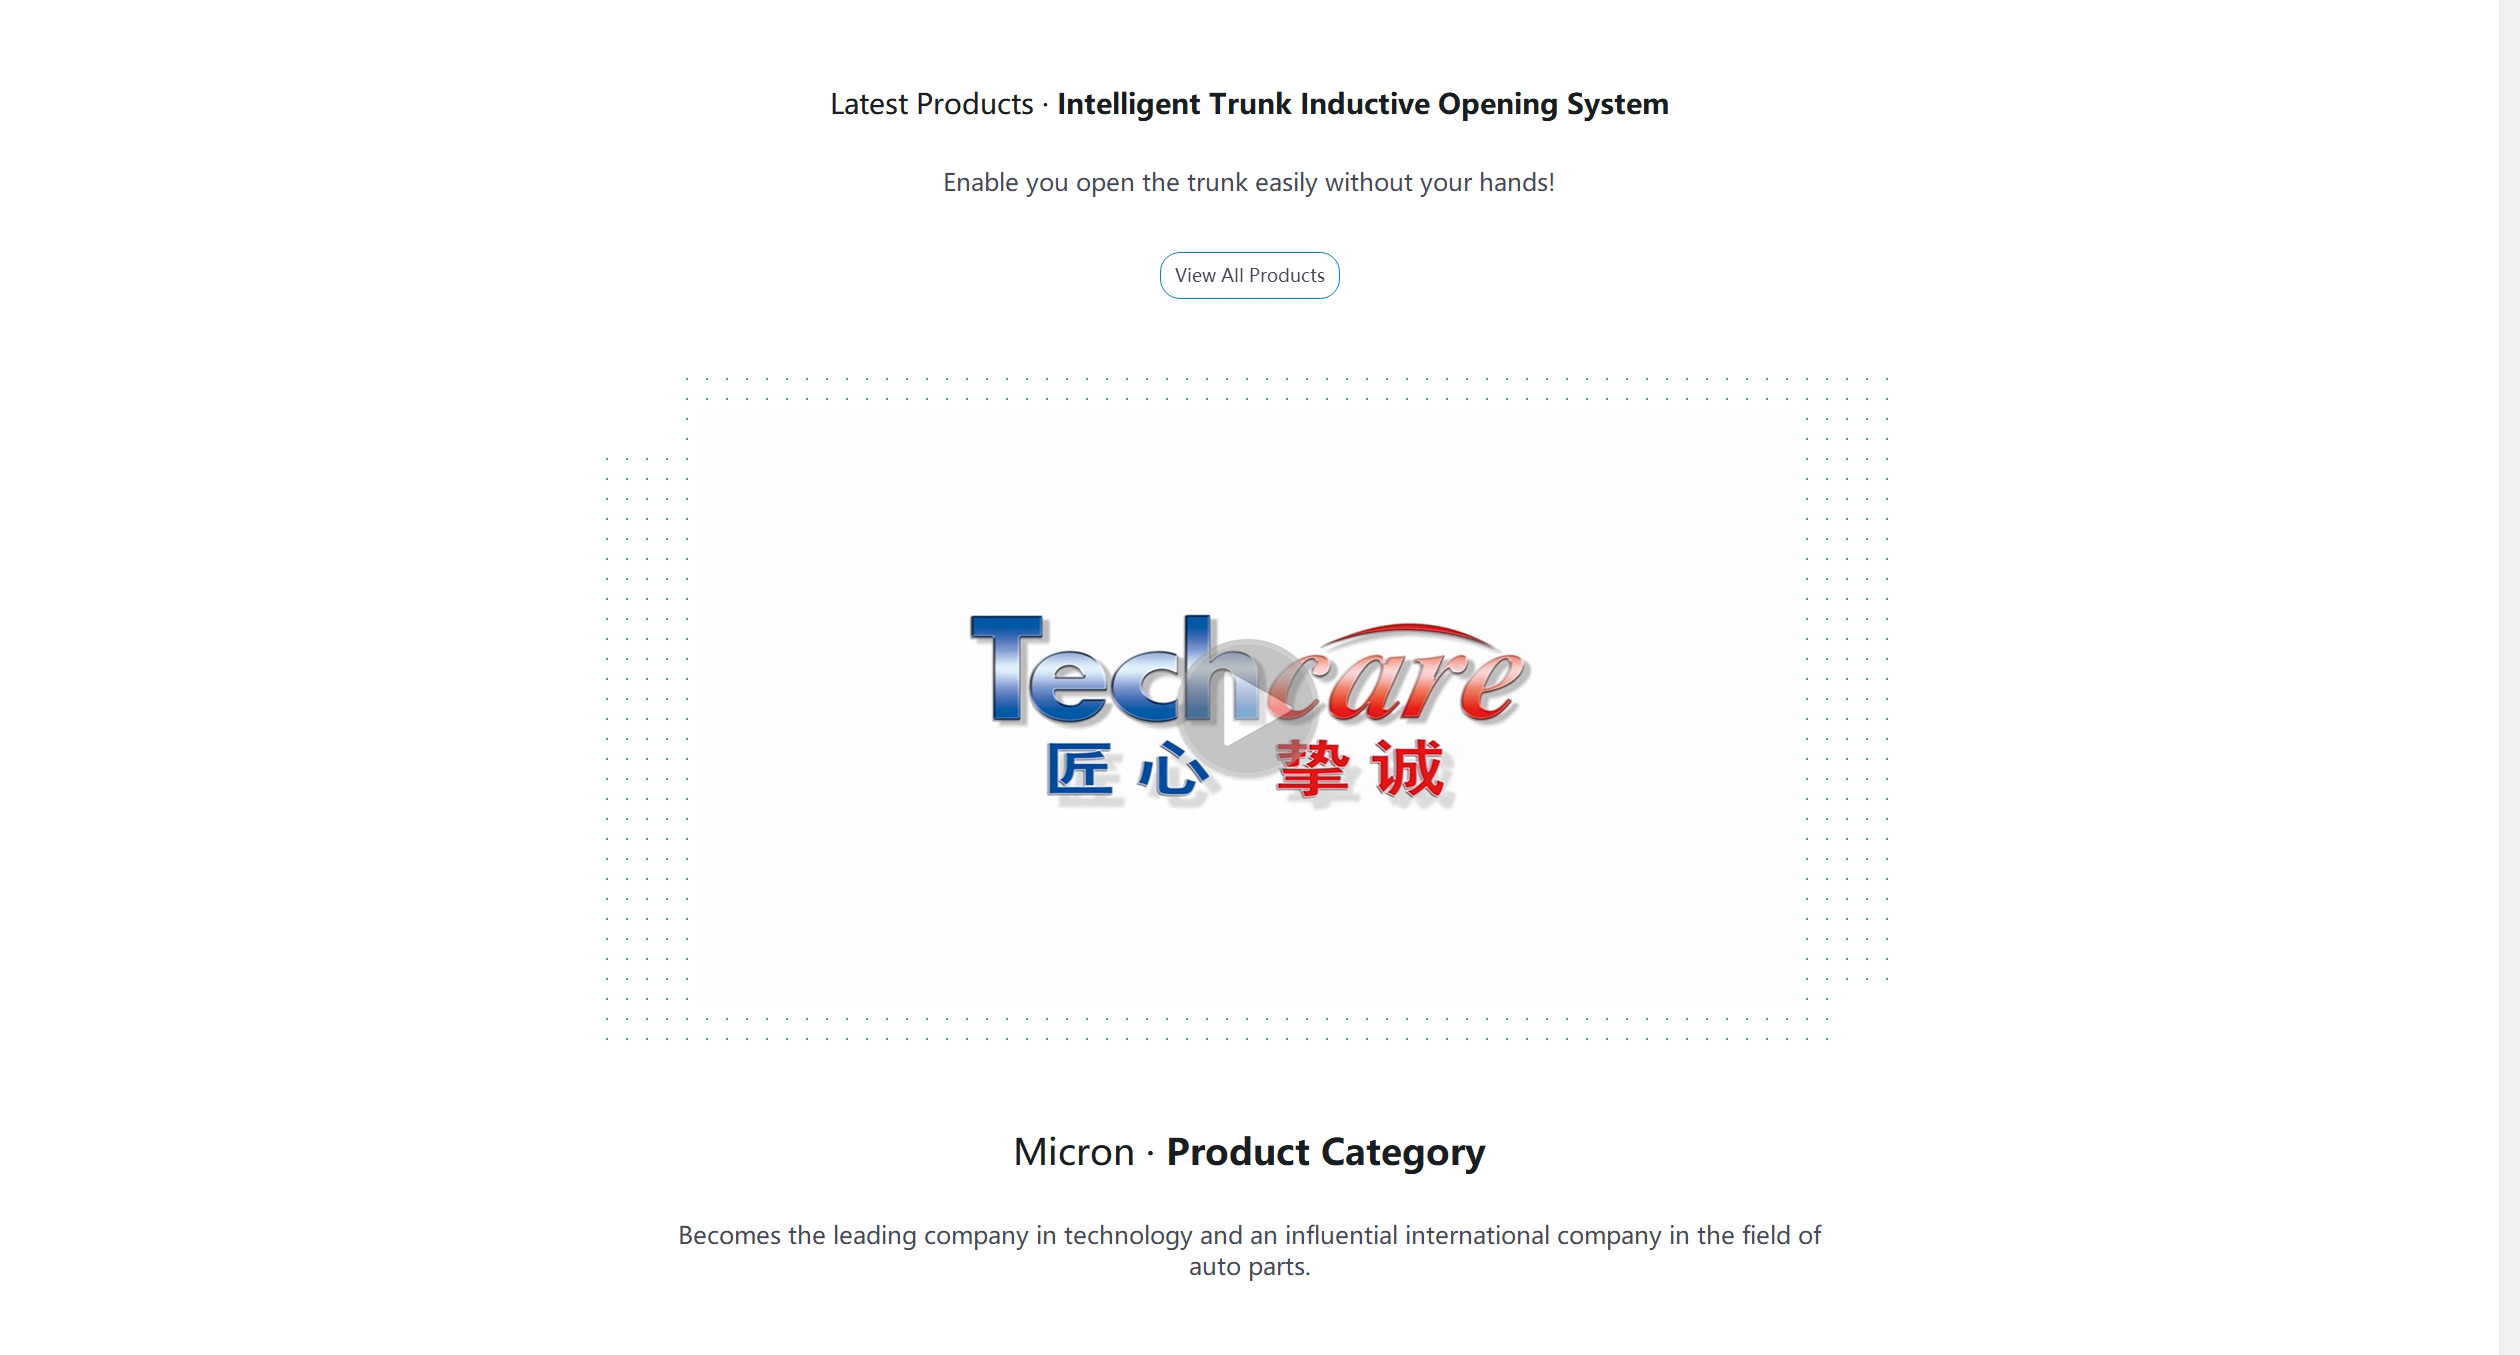 2Jiangsu-Micron-Electronic-Technology-Co_02